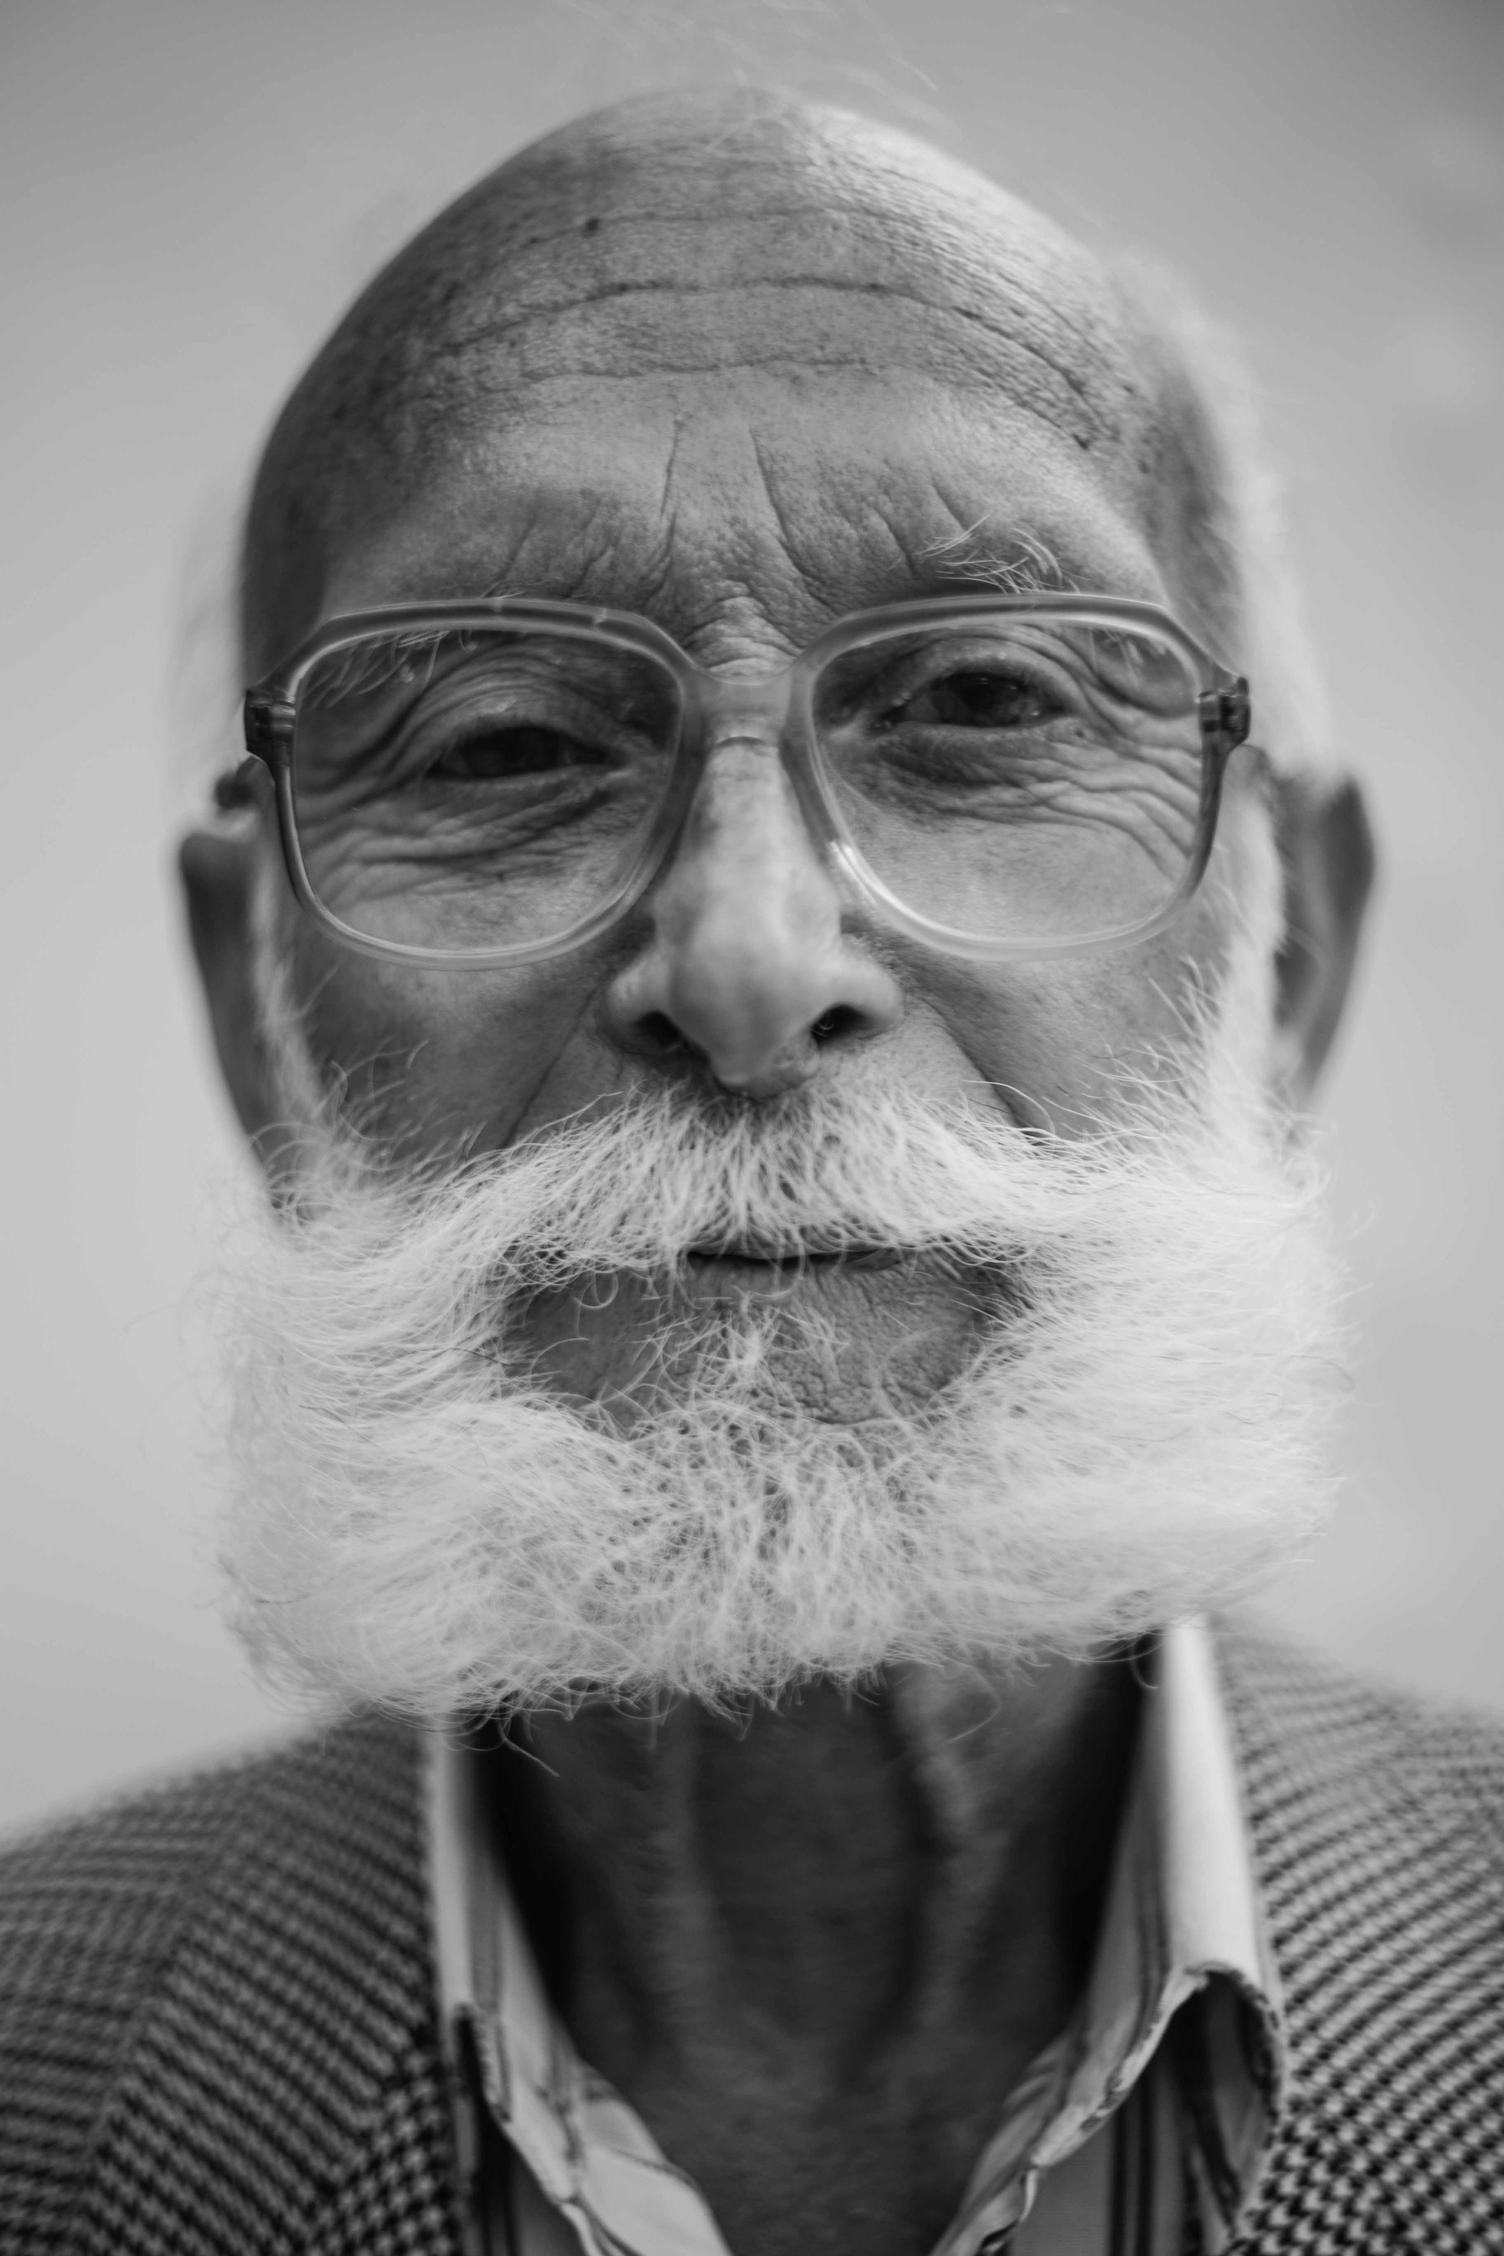 Old Men Wearing Glasses Black & White Portrait